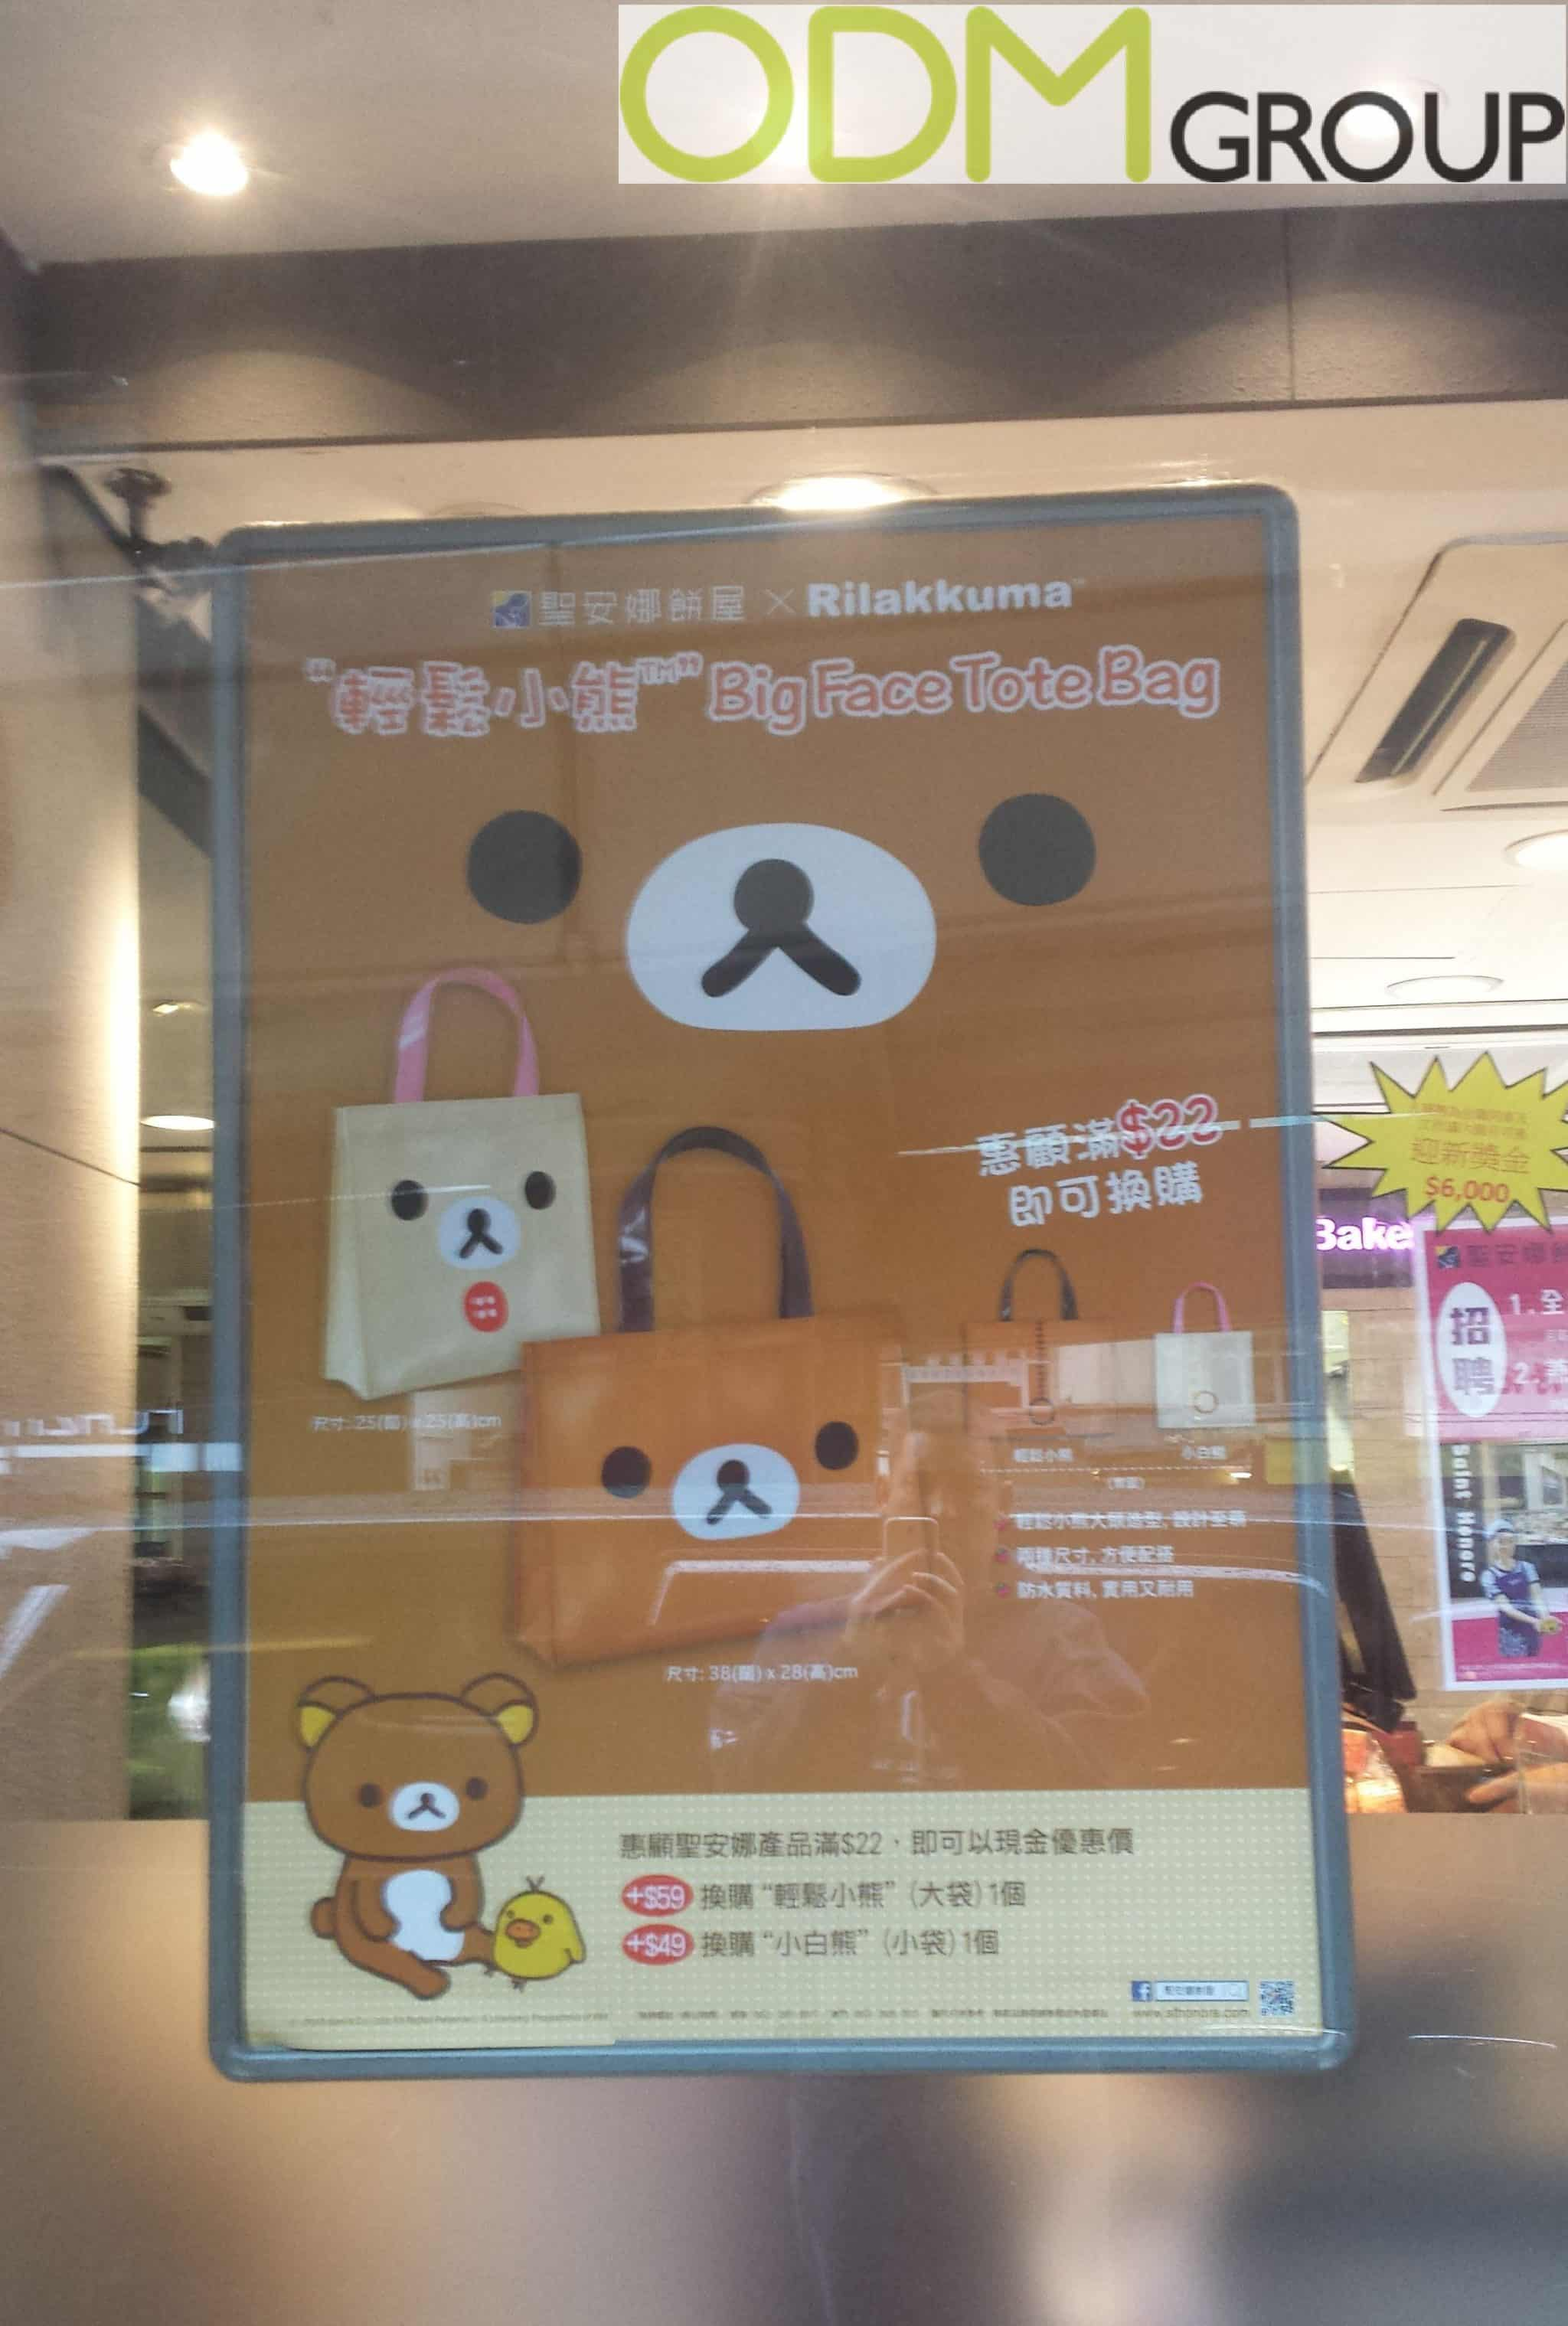 Custom Tote Bags in Rilakkuma Big Face Promotion